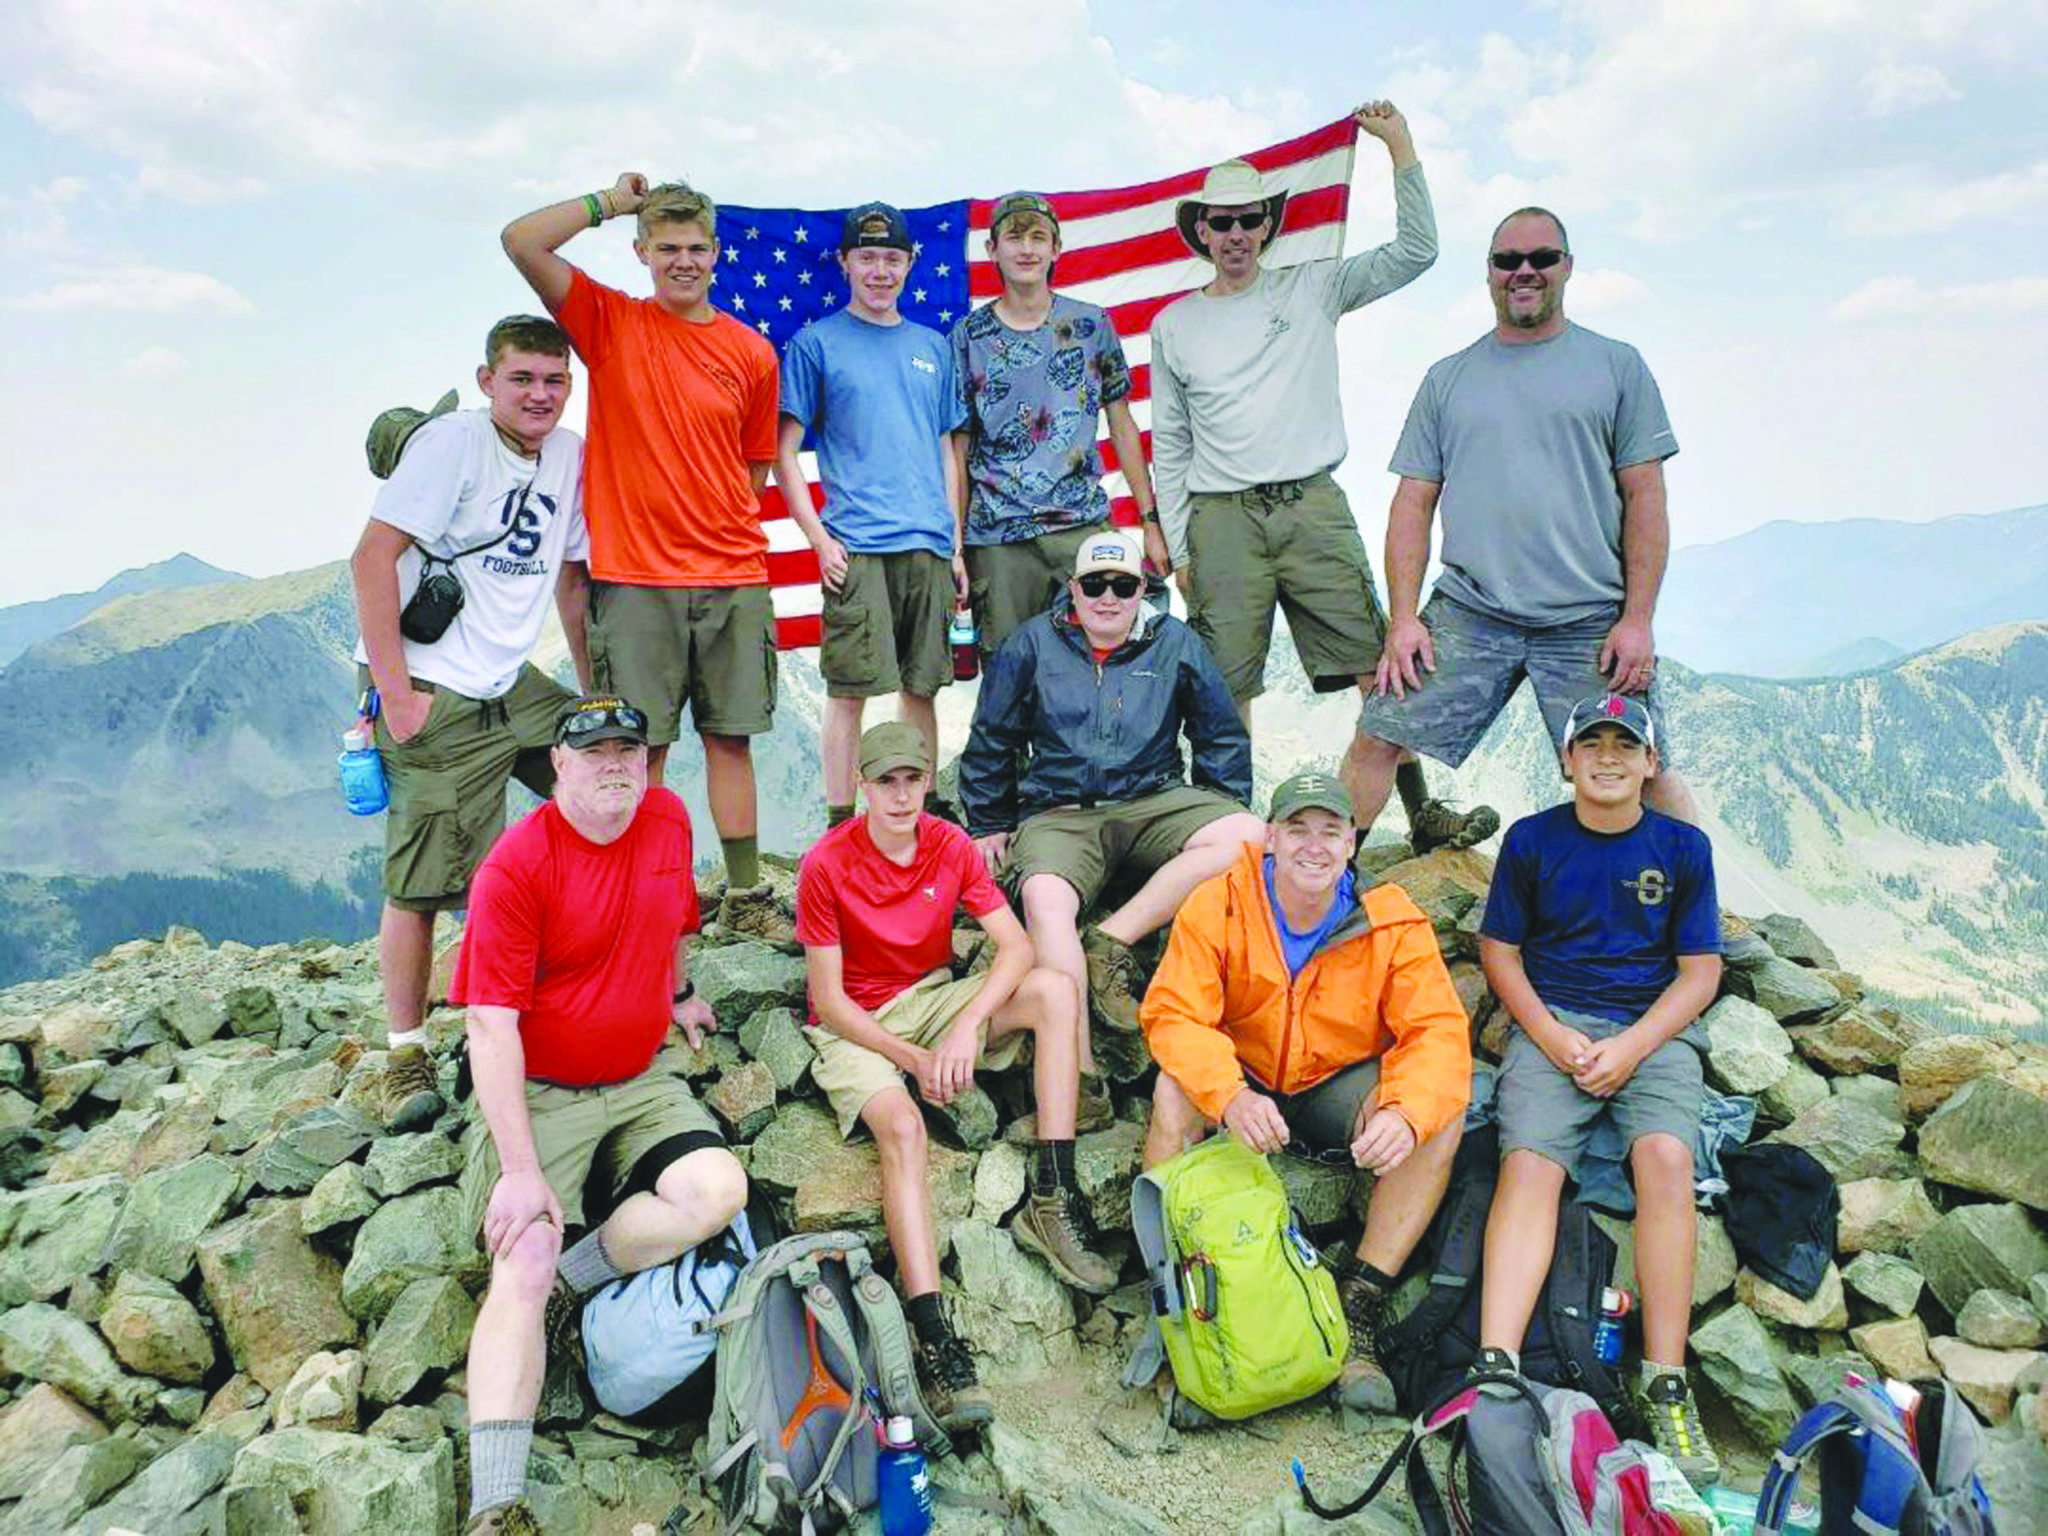 Skaneateles area scouts spent part of summer in New Mexico